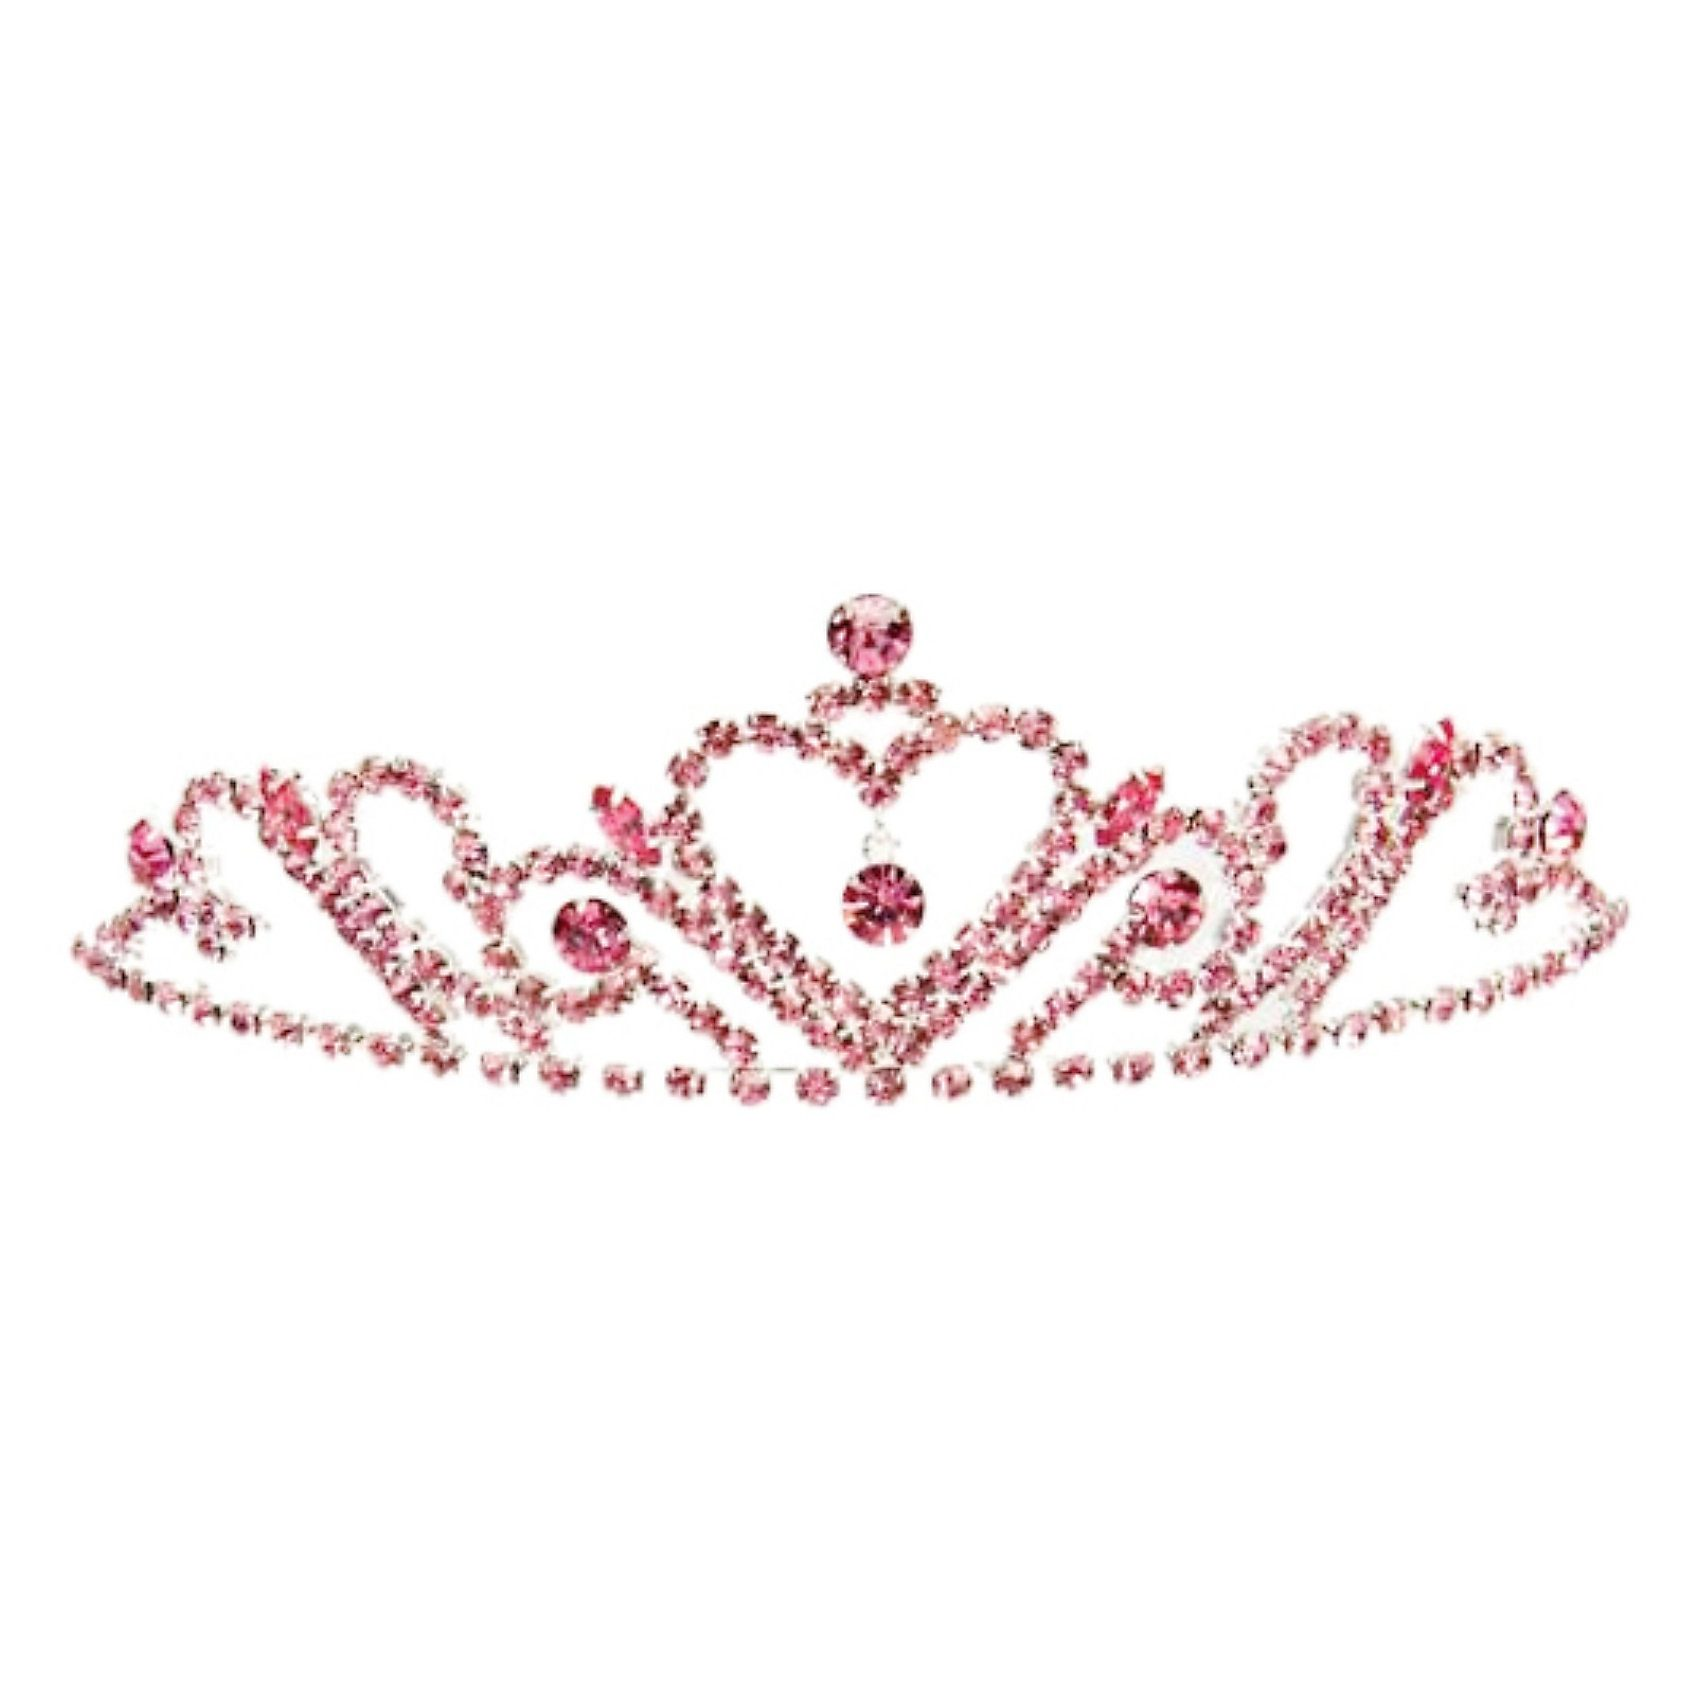 Lucy Locket Diadem pink